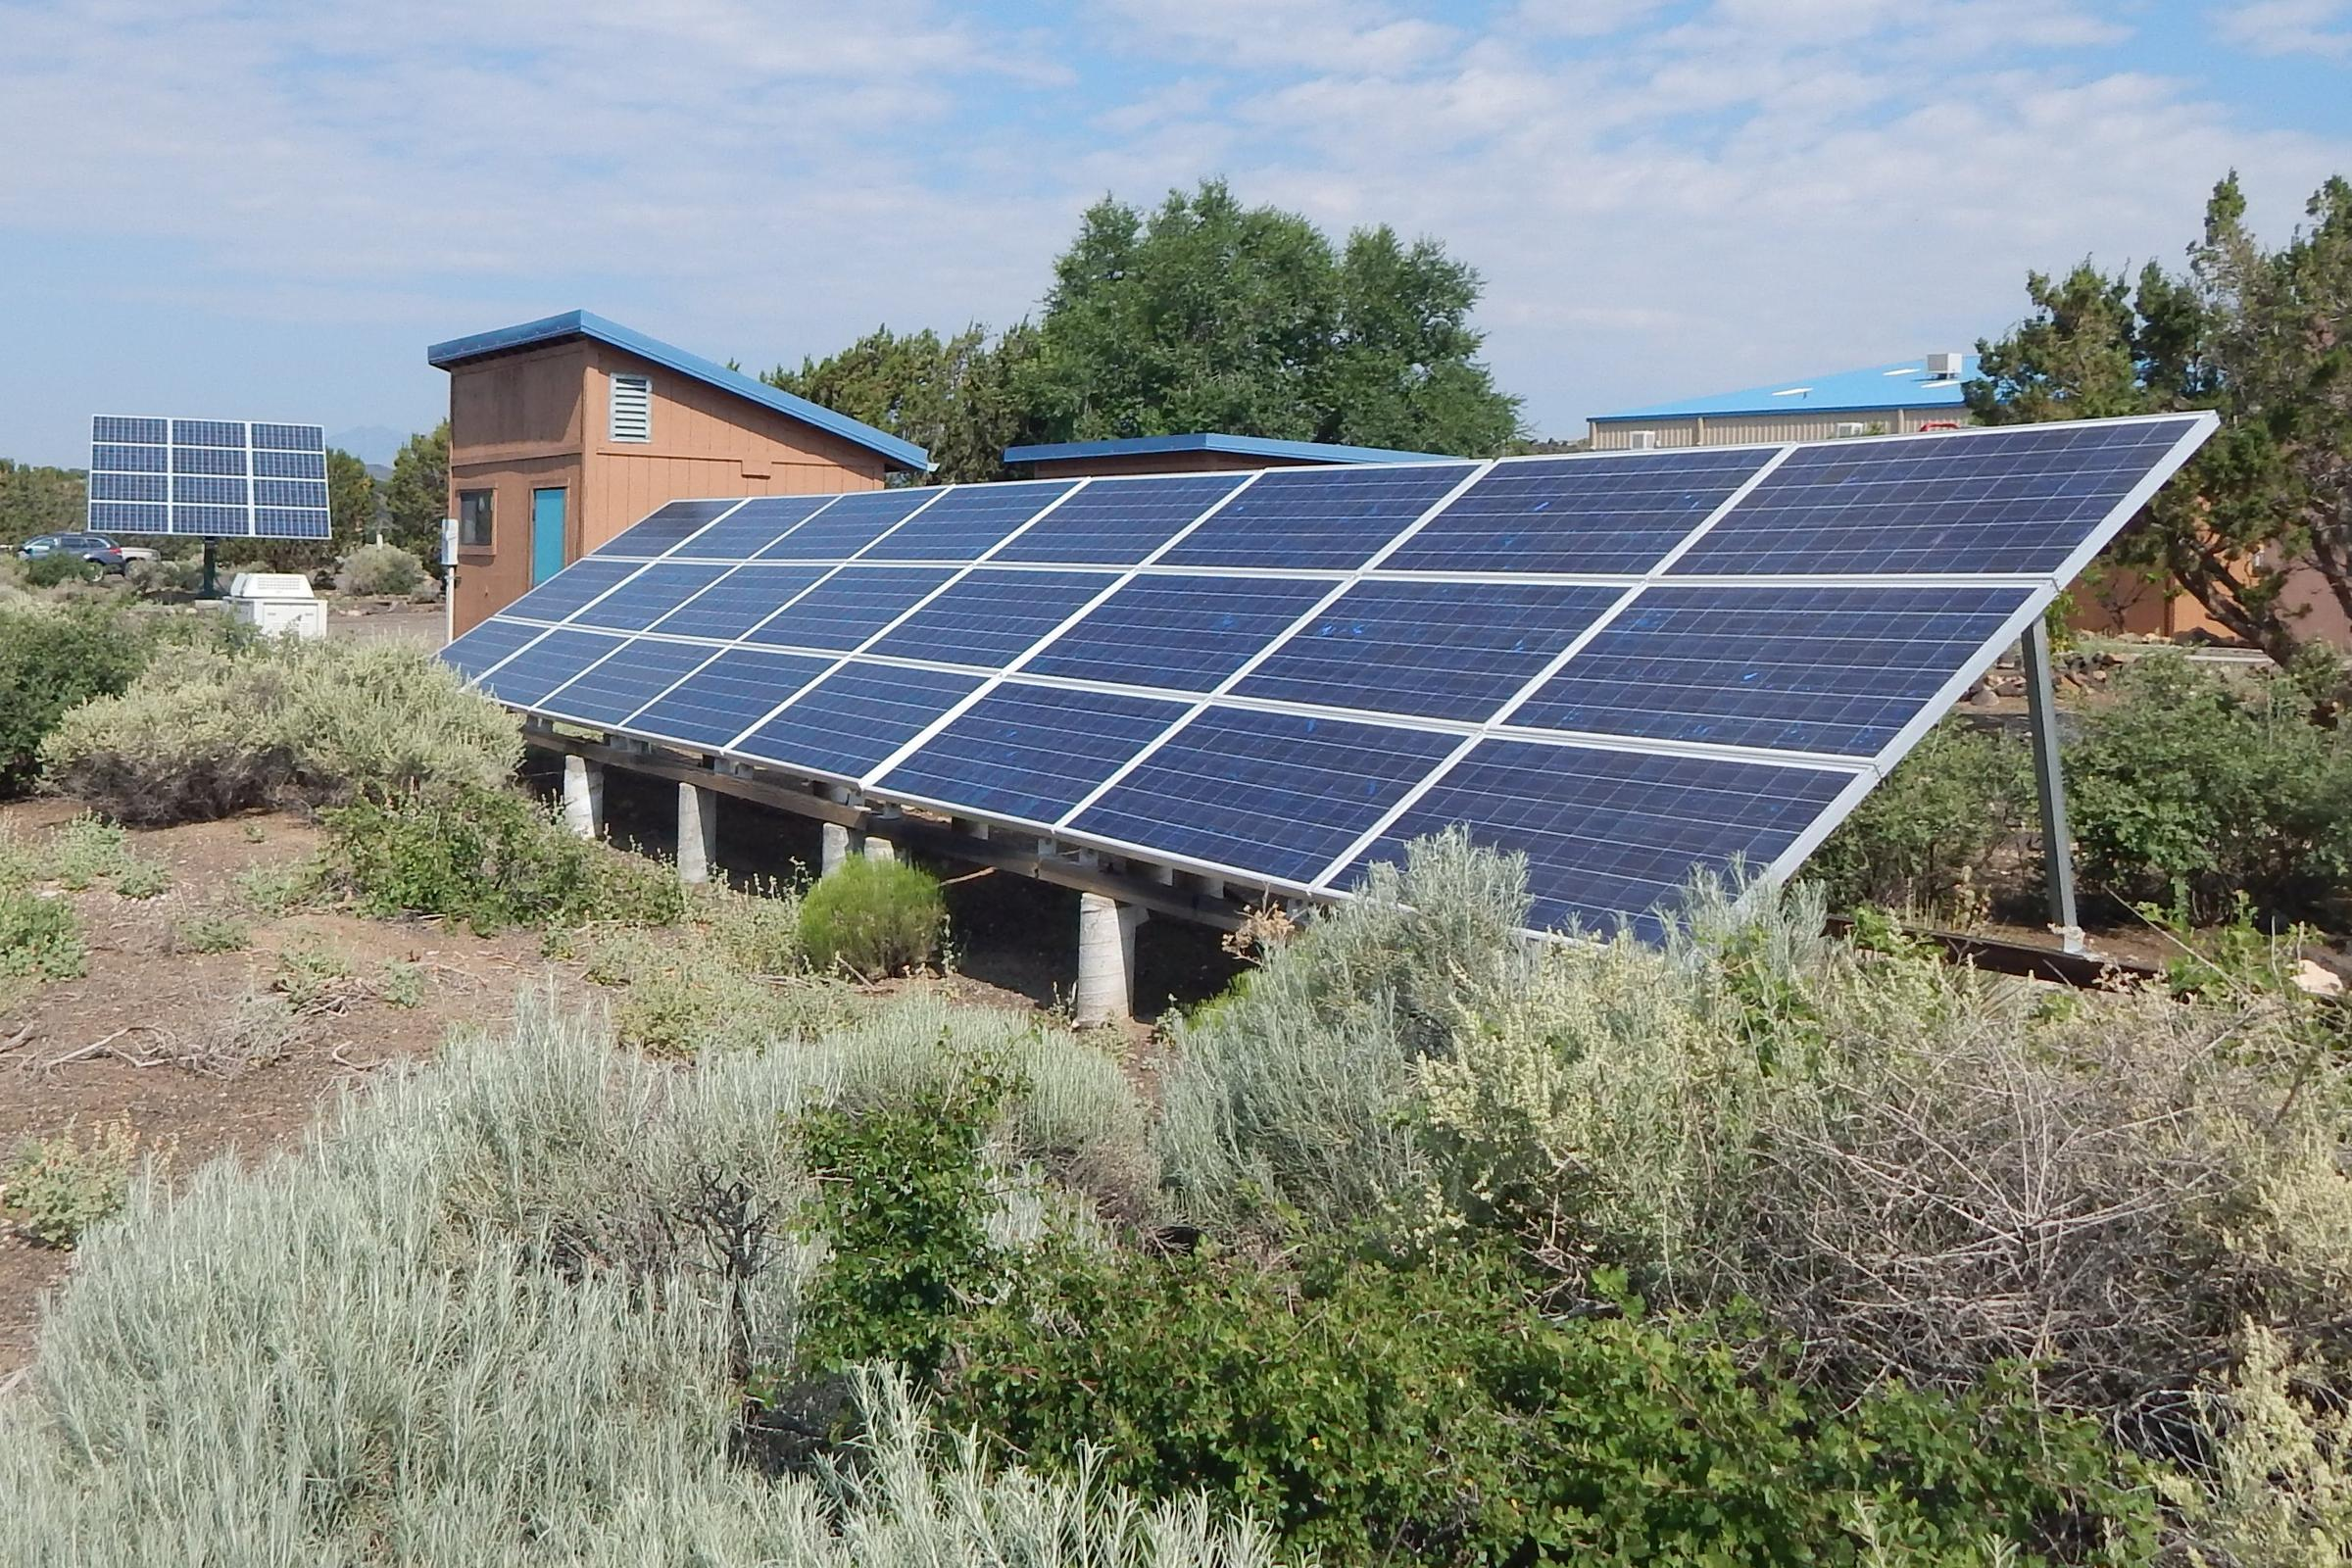 Arizona Ranks Third In Nation For Rooftop Solar Energy